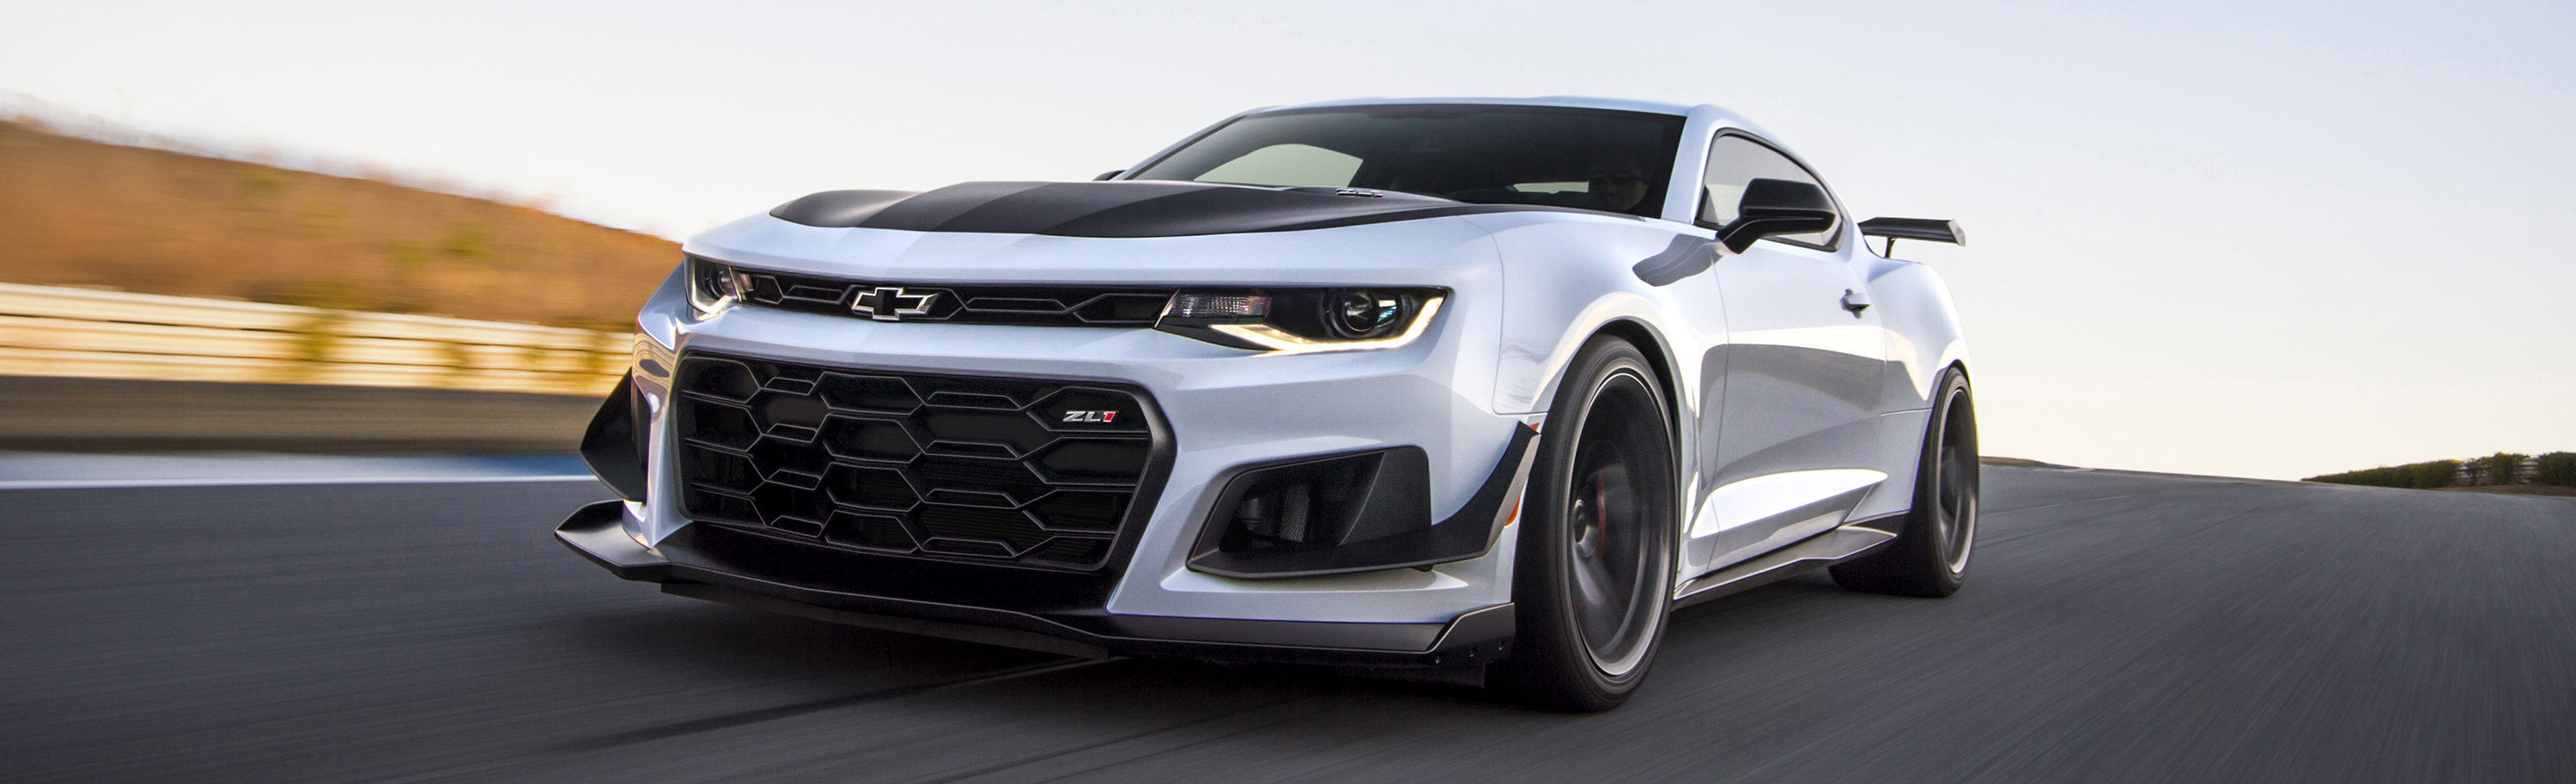 43 All New 2020 Camaro Z28 Horsepower Prices